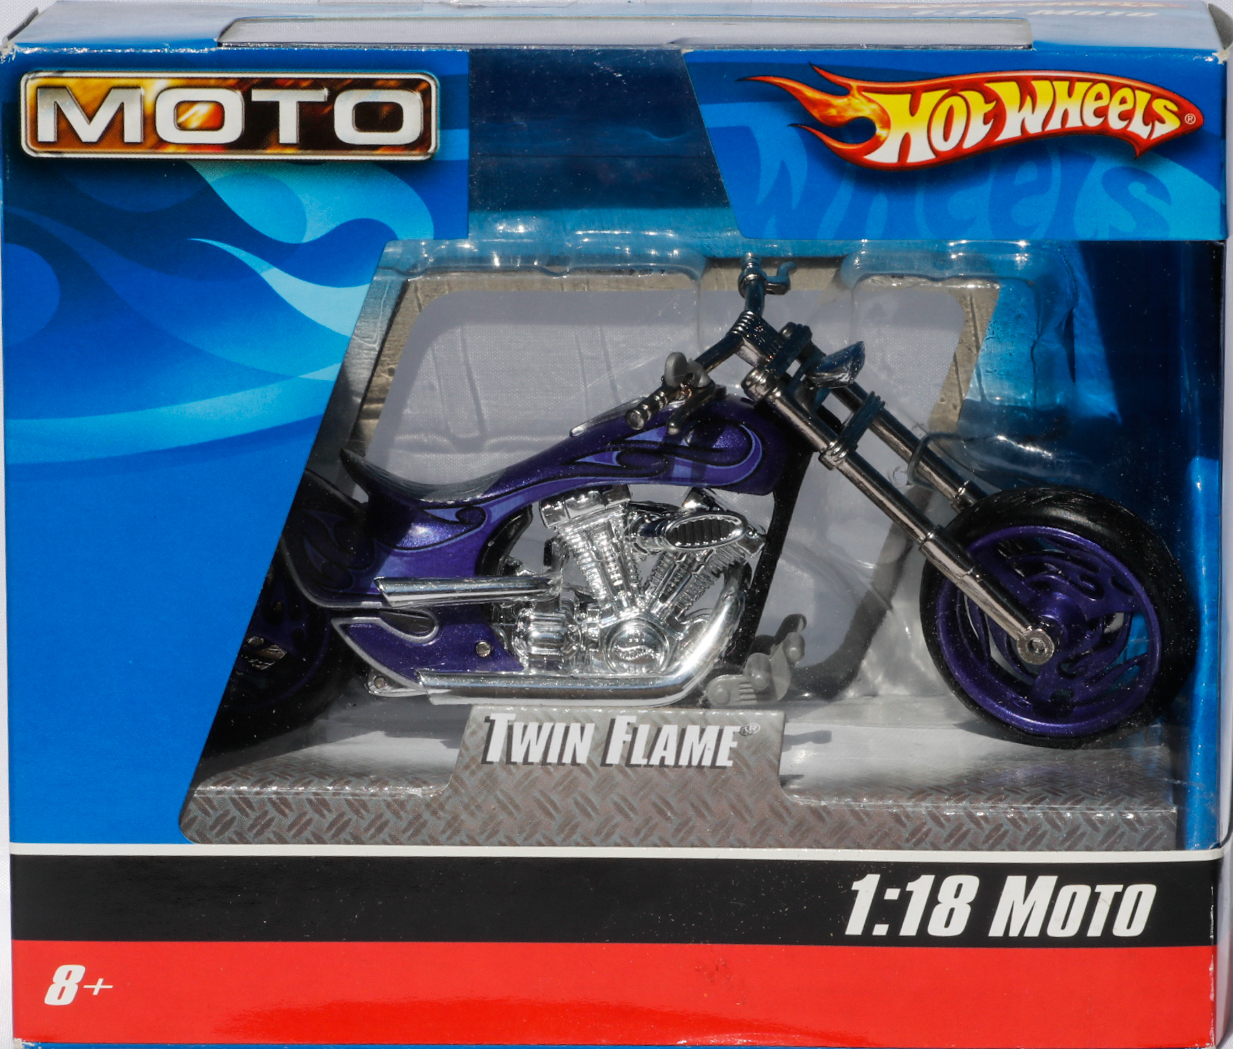 Hot Wheels 1-18 Moto Twin Flame